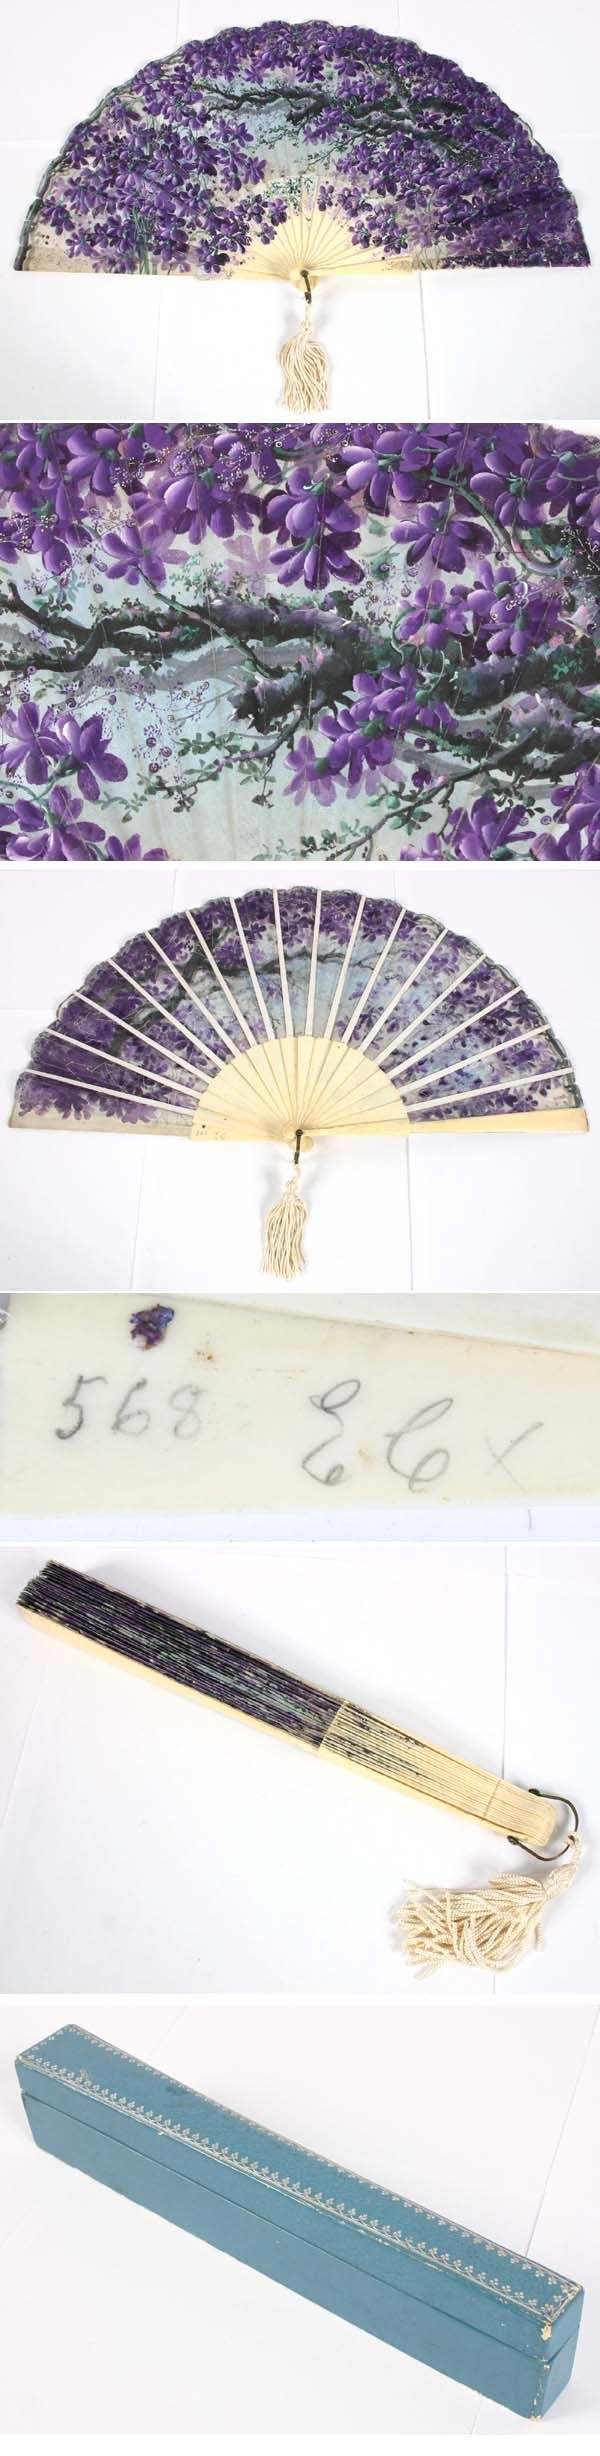 Lithograph on Cloth Fan Celluloid Sticks c.1910